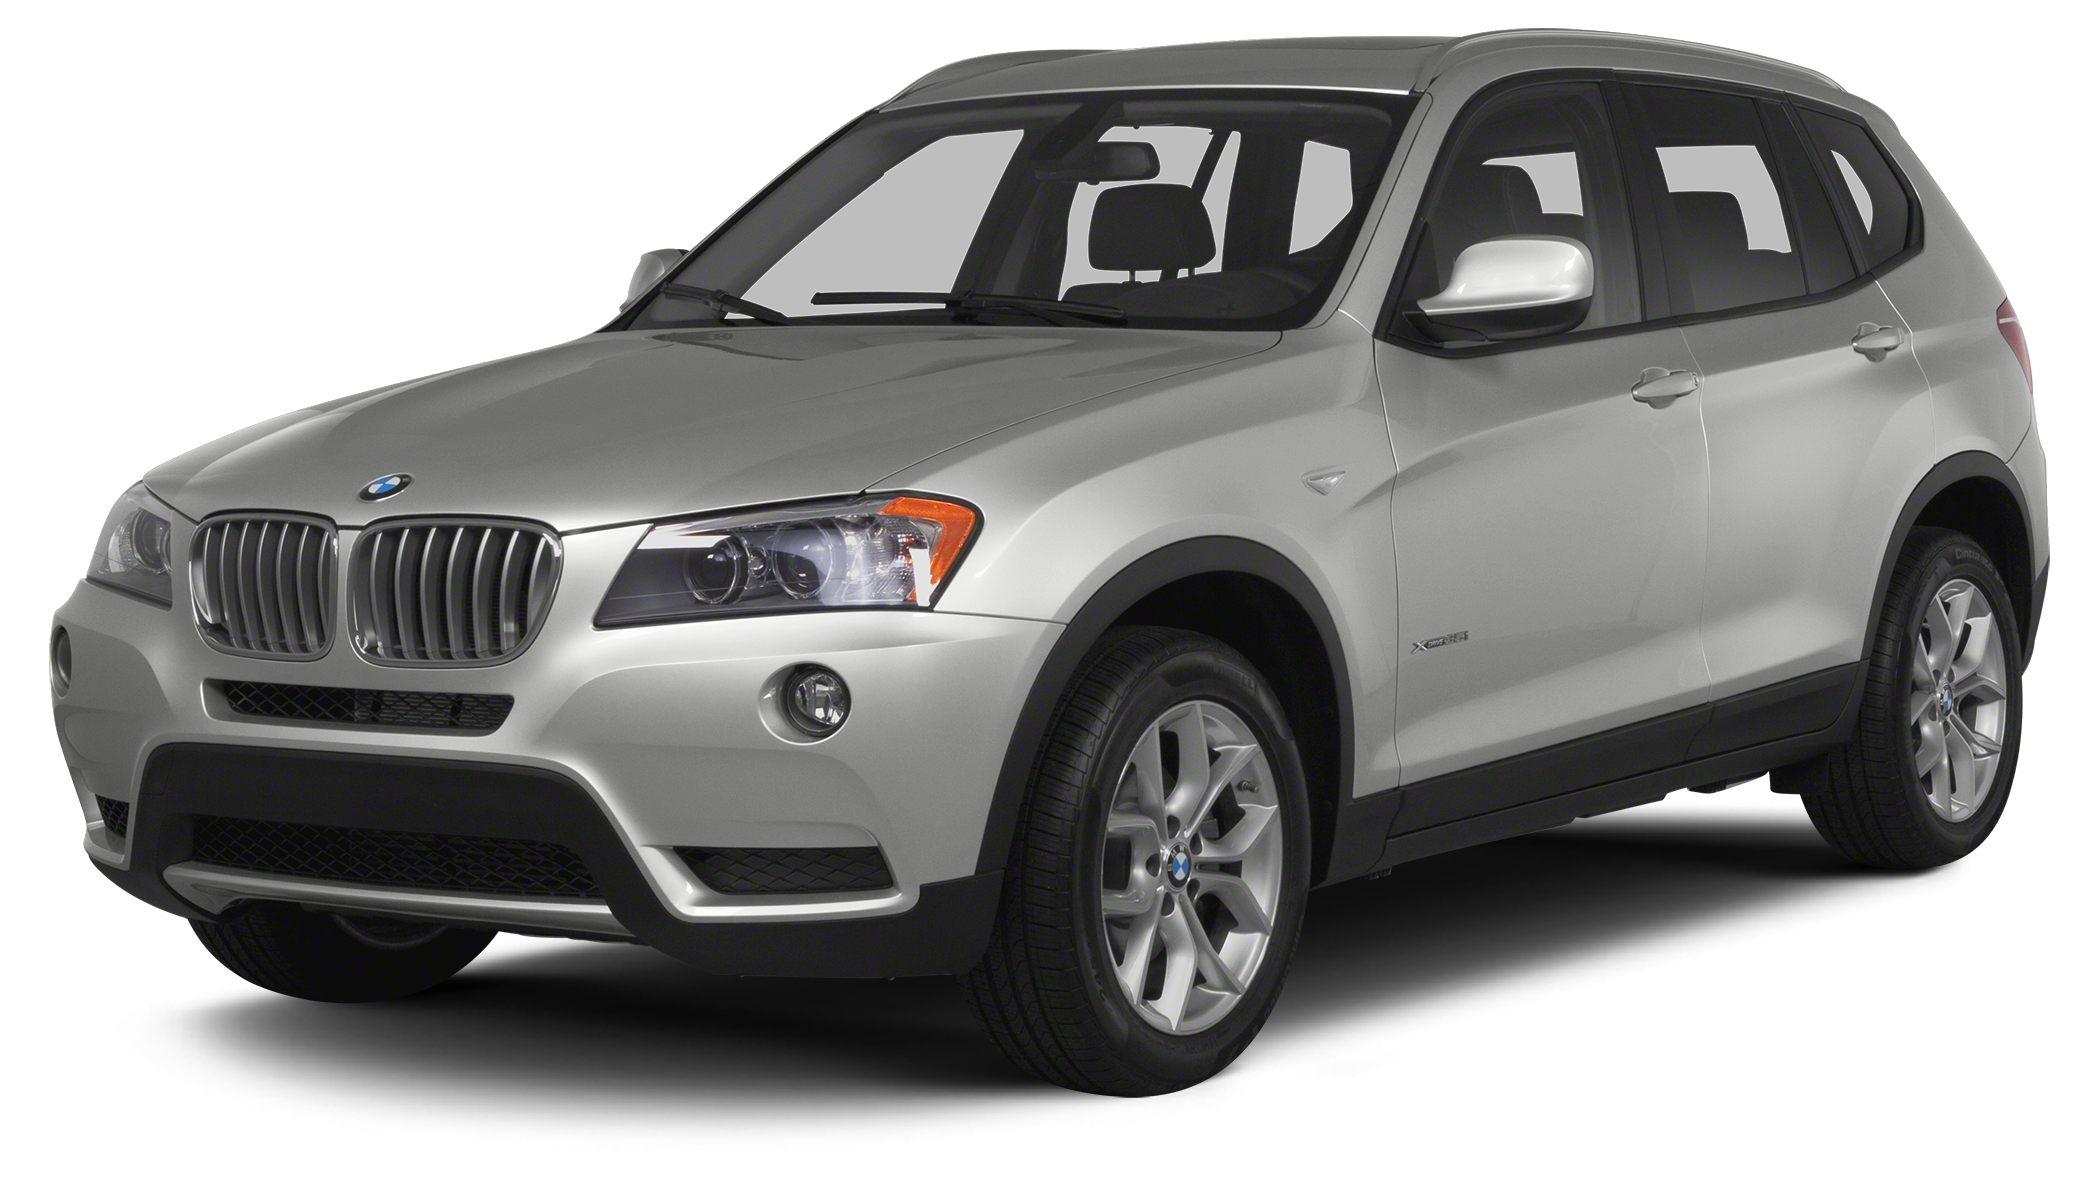 2013 BMW X3 xDrive28i NAVIGATION1 OWNERCARAFX CERTIFIEDDEALER MAINTAINEDIMMACULATE PAN